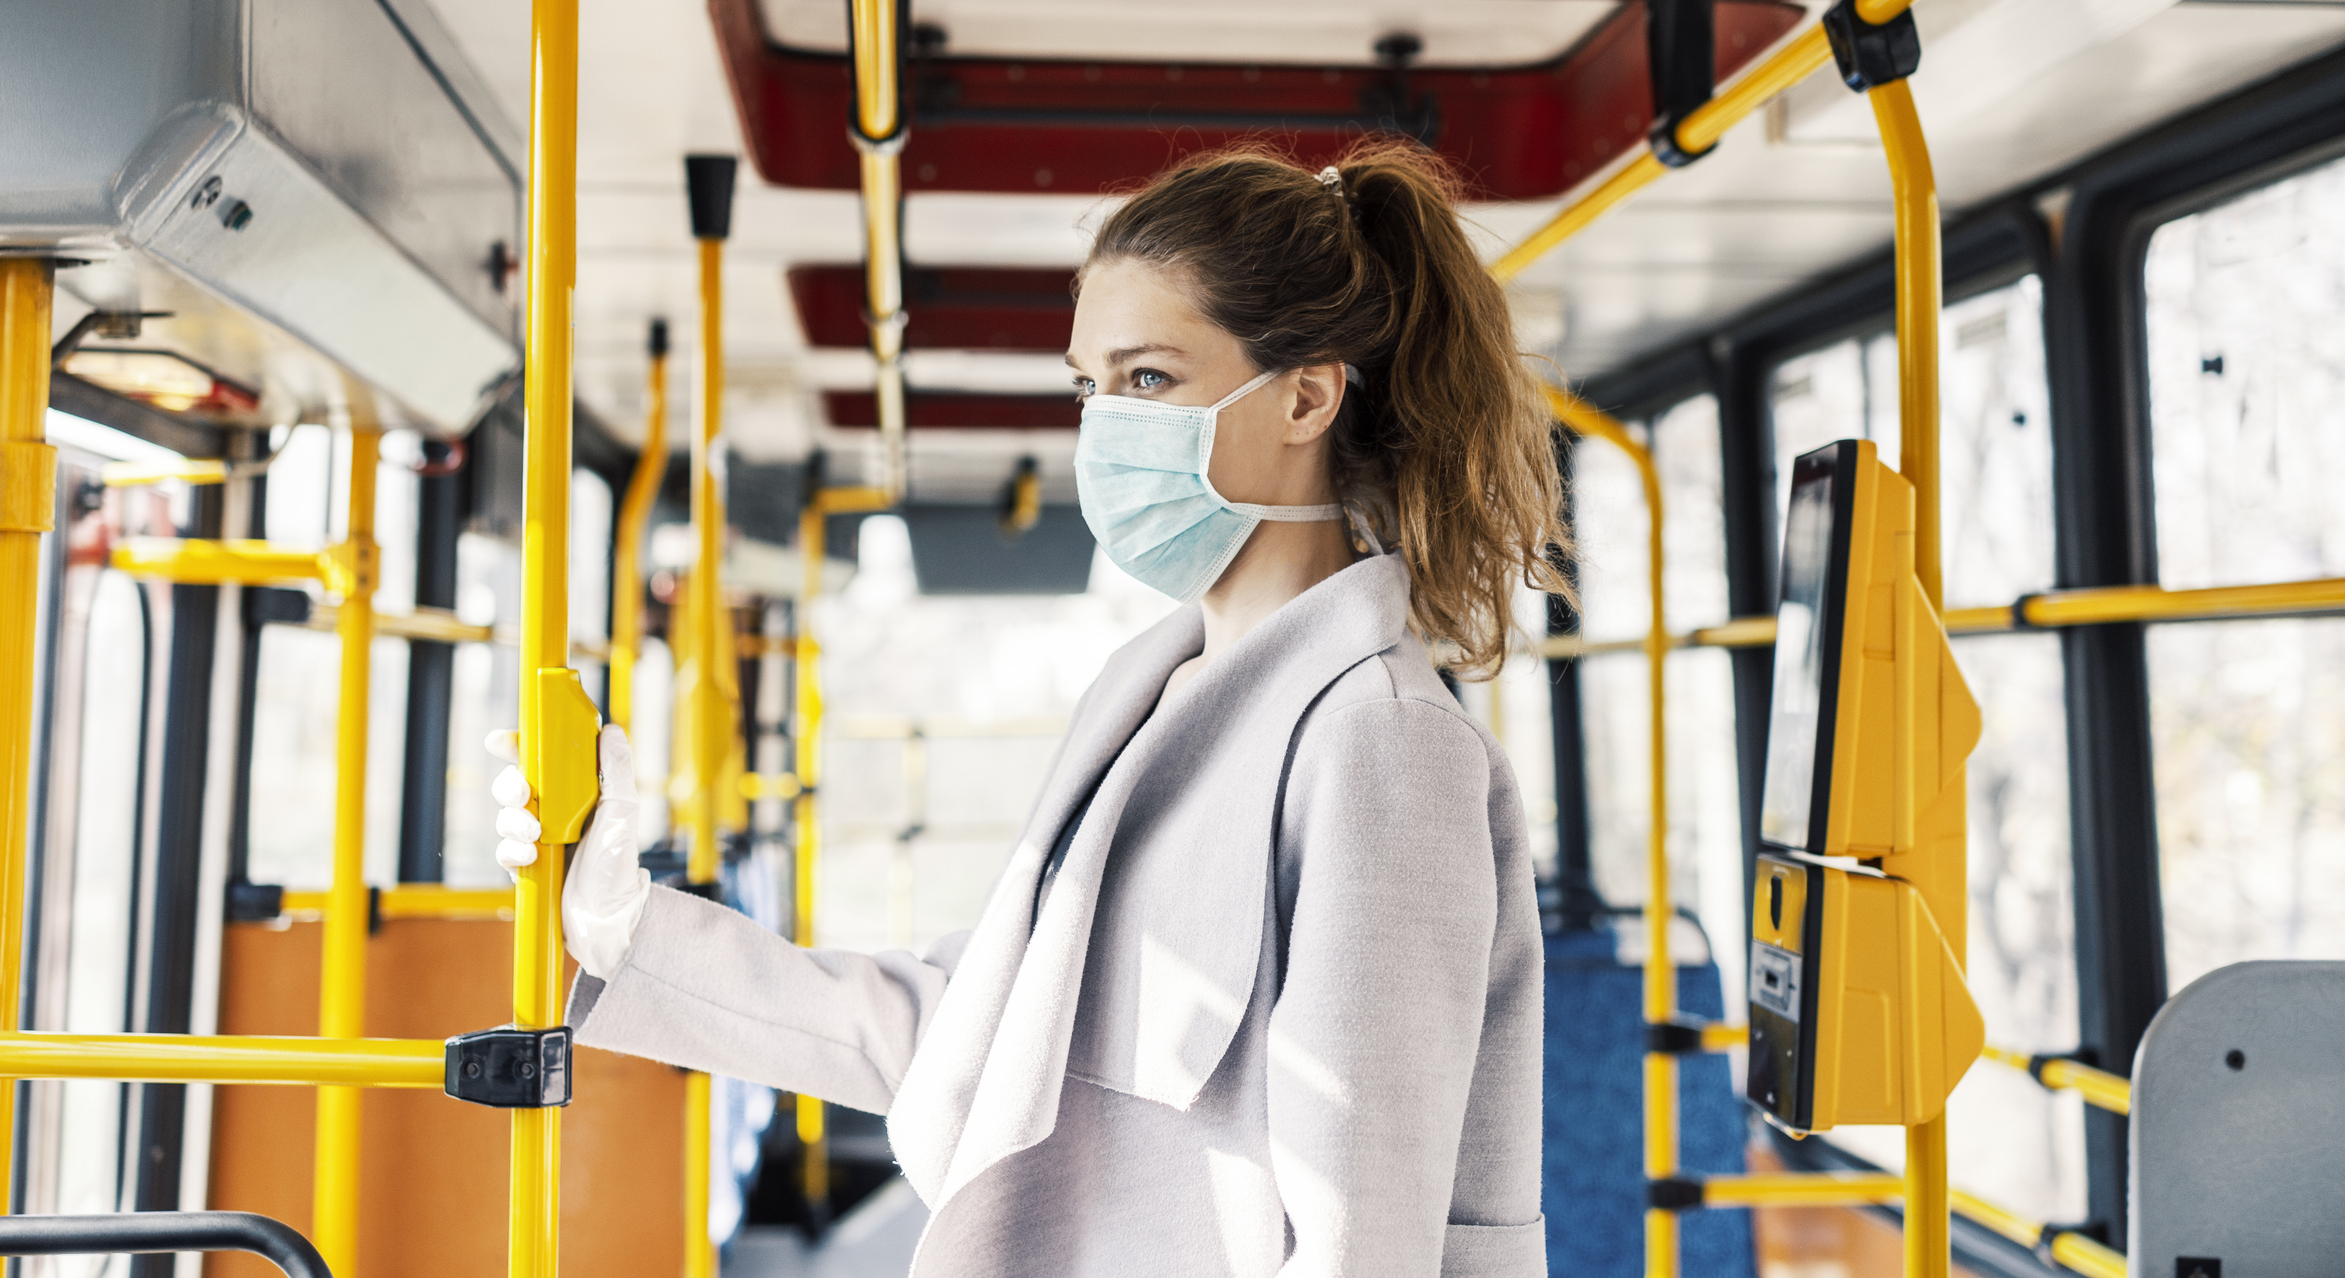 Australians support wearing a mask on public transport, study finds